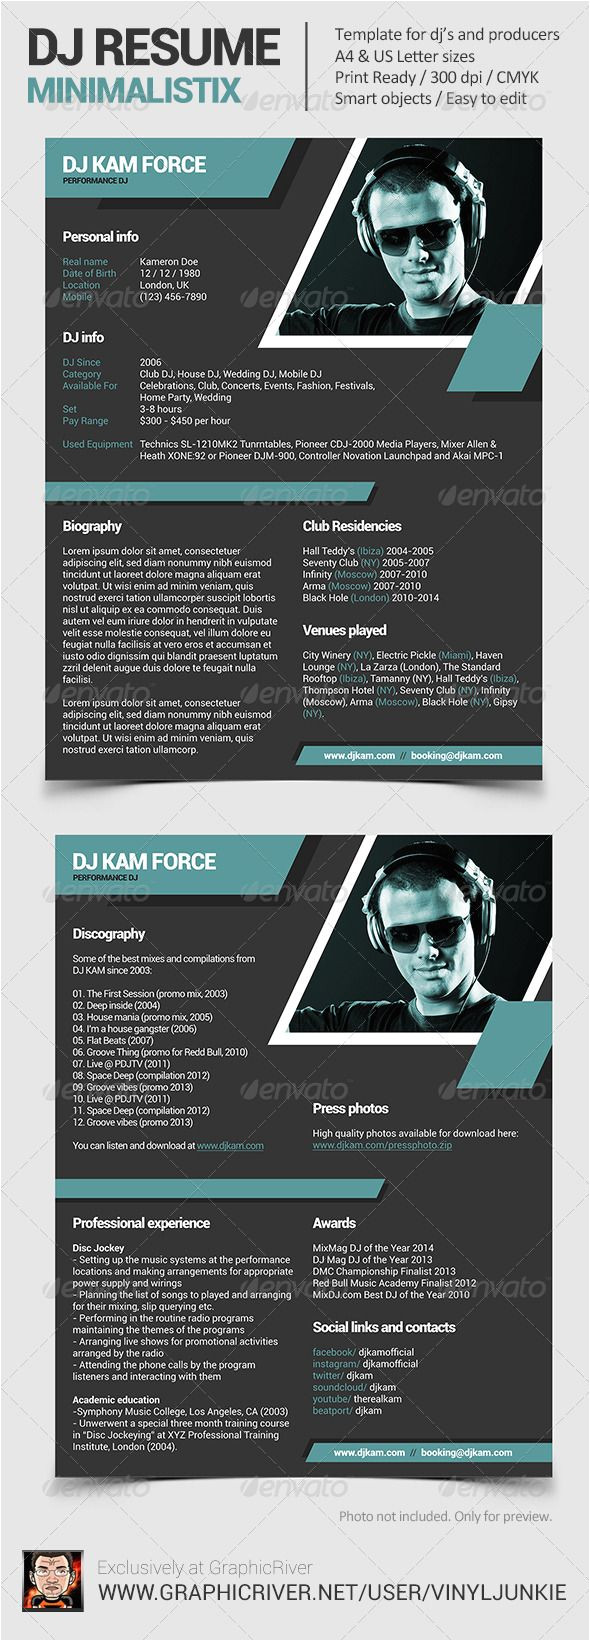 dj press kit and dj resume templates